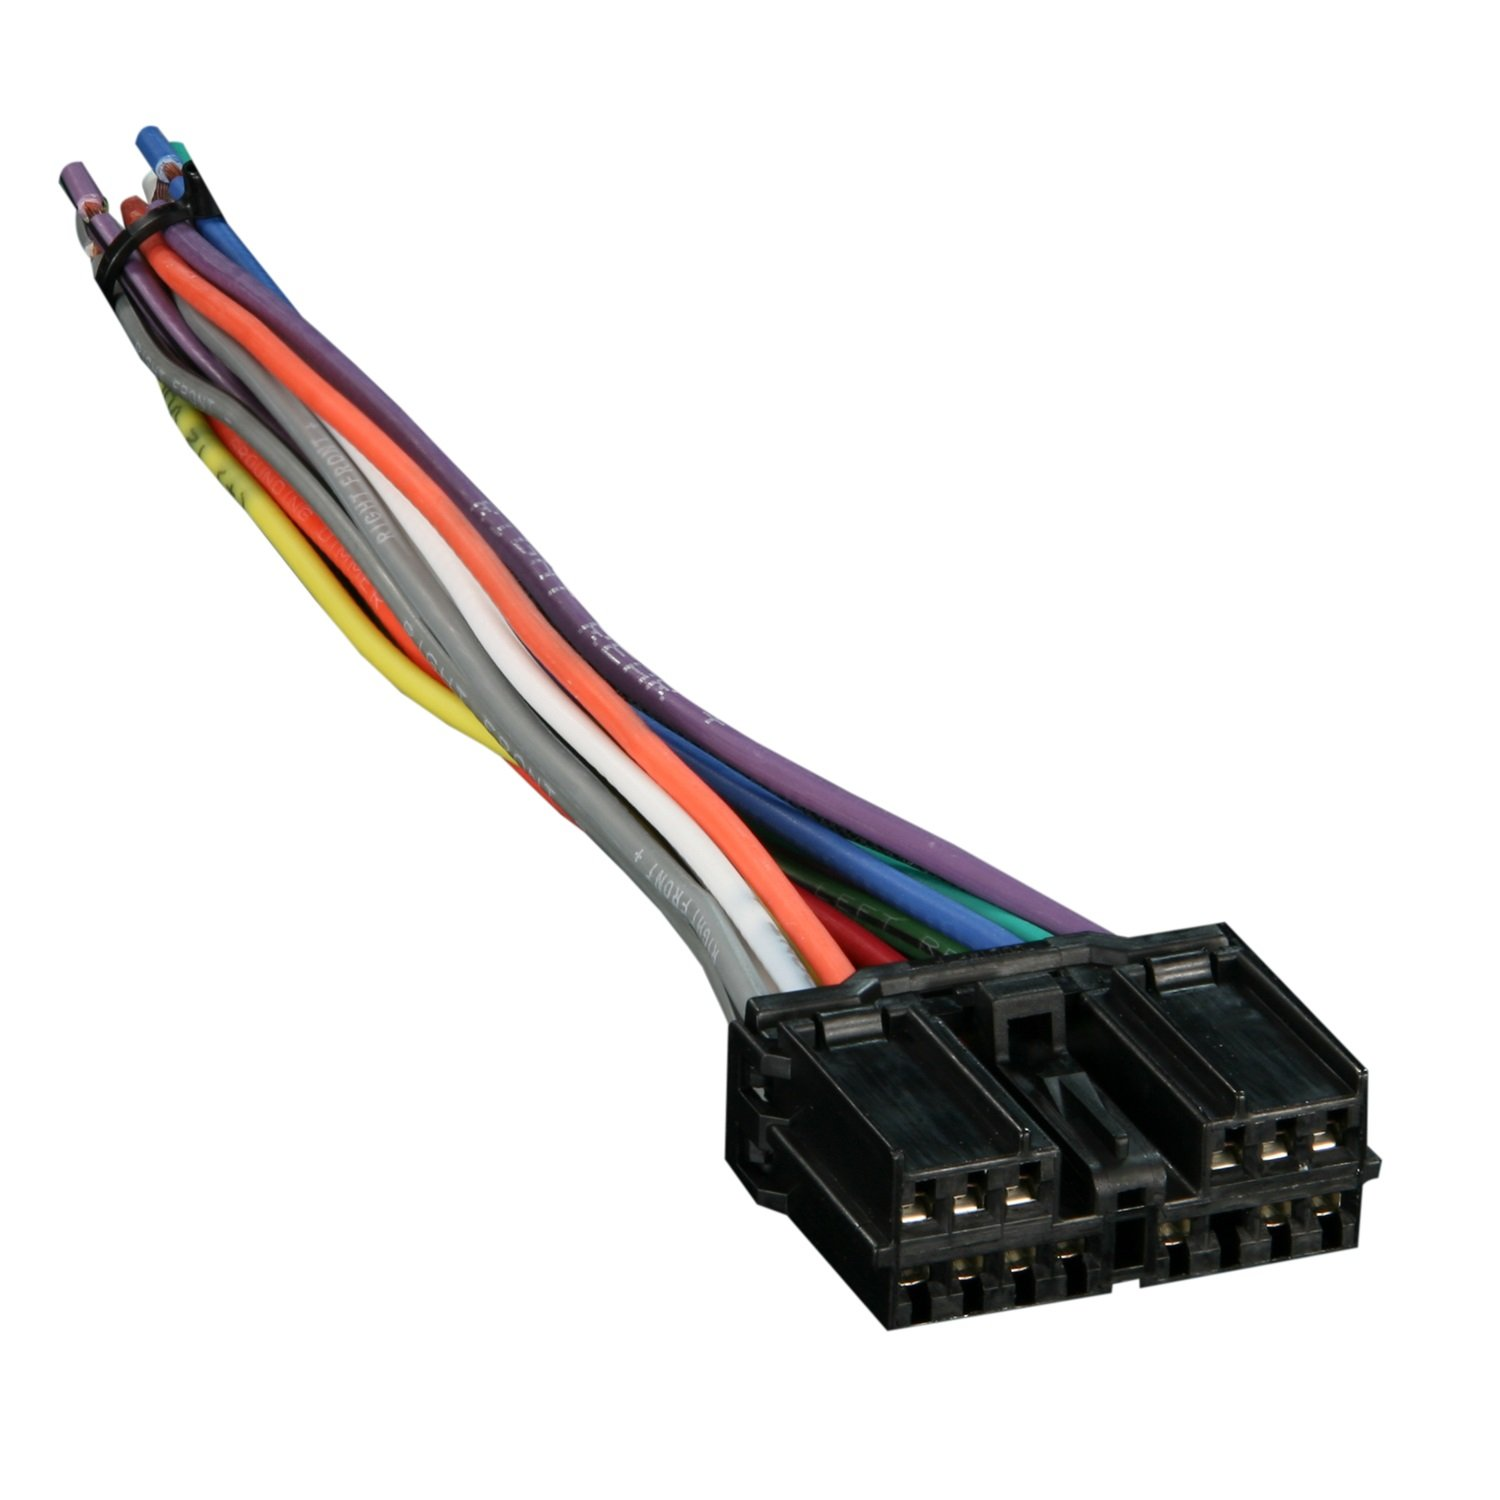 61CkQ4qdSJL._SL1500_ amazon com metra reverse wiring harness 71 7001 for select 1995 metra pioneer wiring harness at edmiracle.co